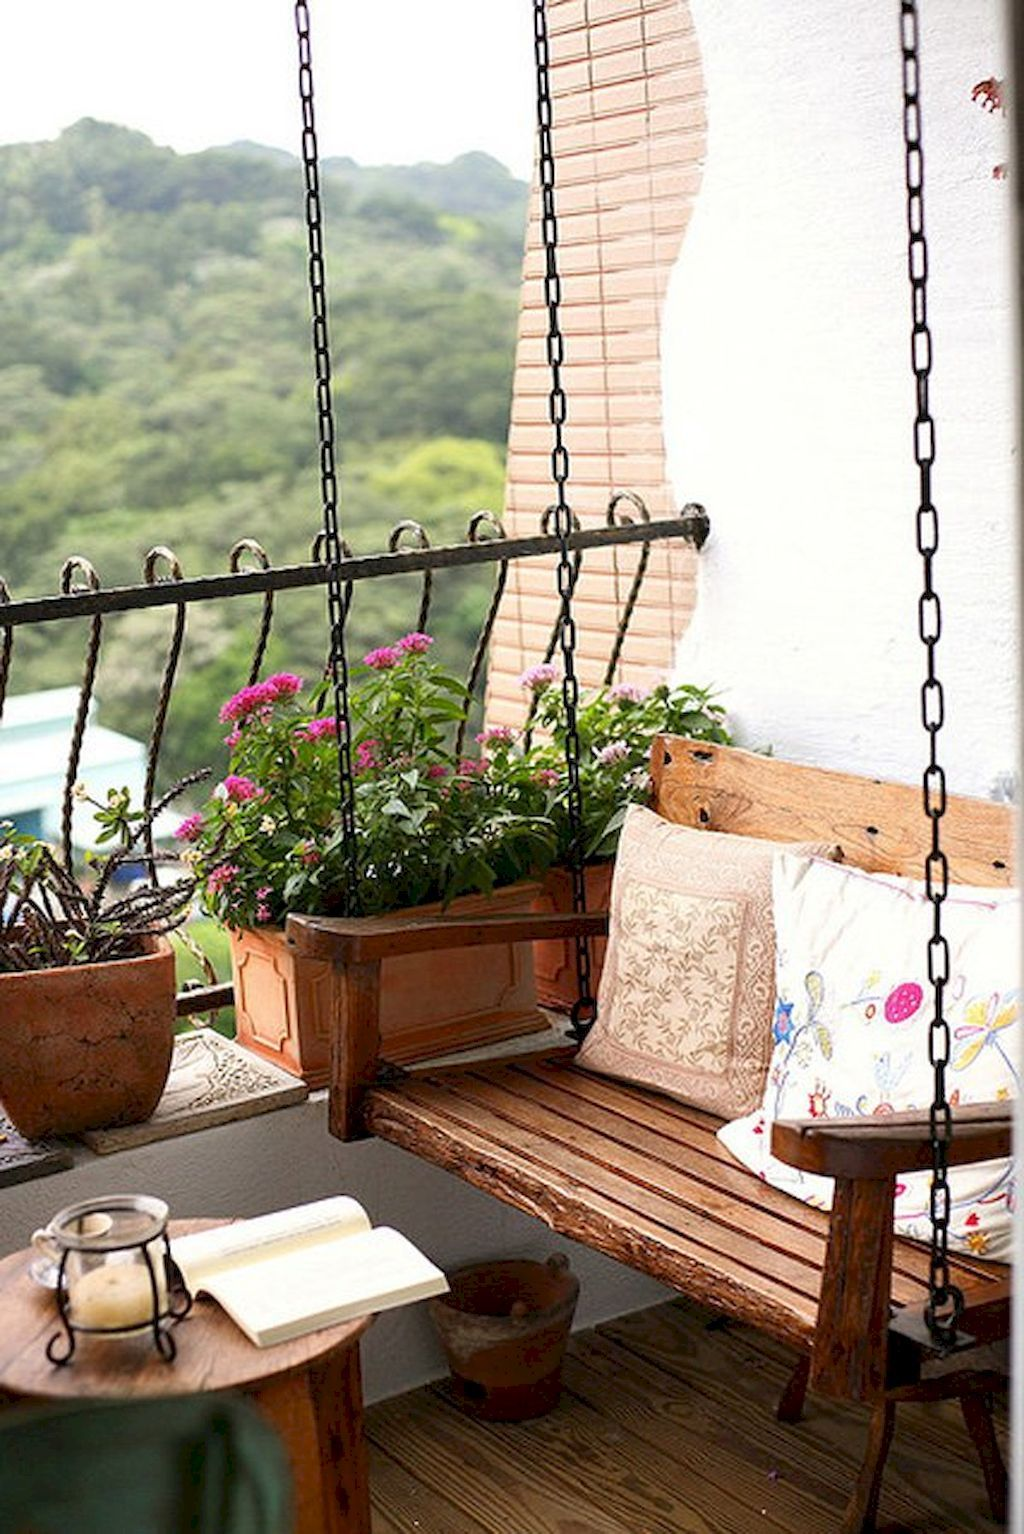 Small Apartment Balcony Garden Ideas: Small Apartment Balcony Decorating Ideas (35)